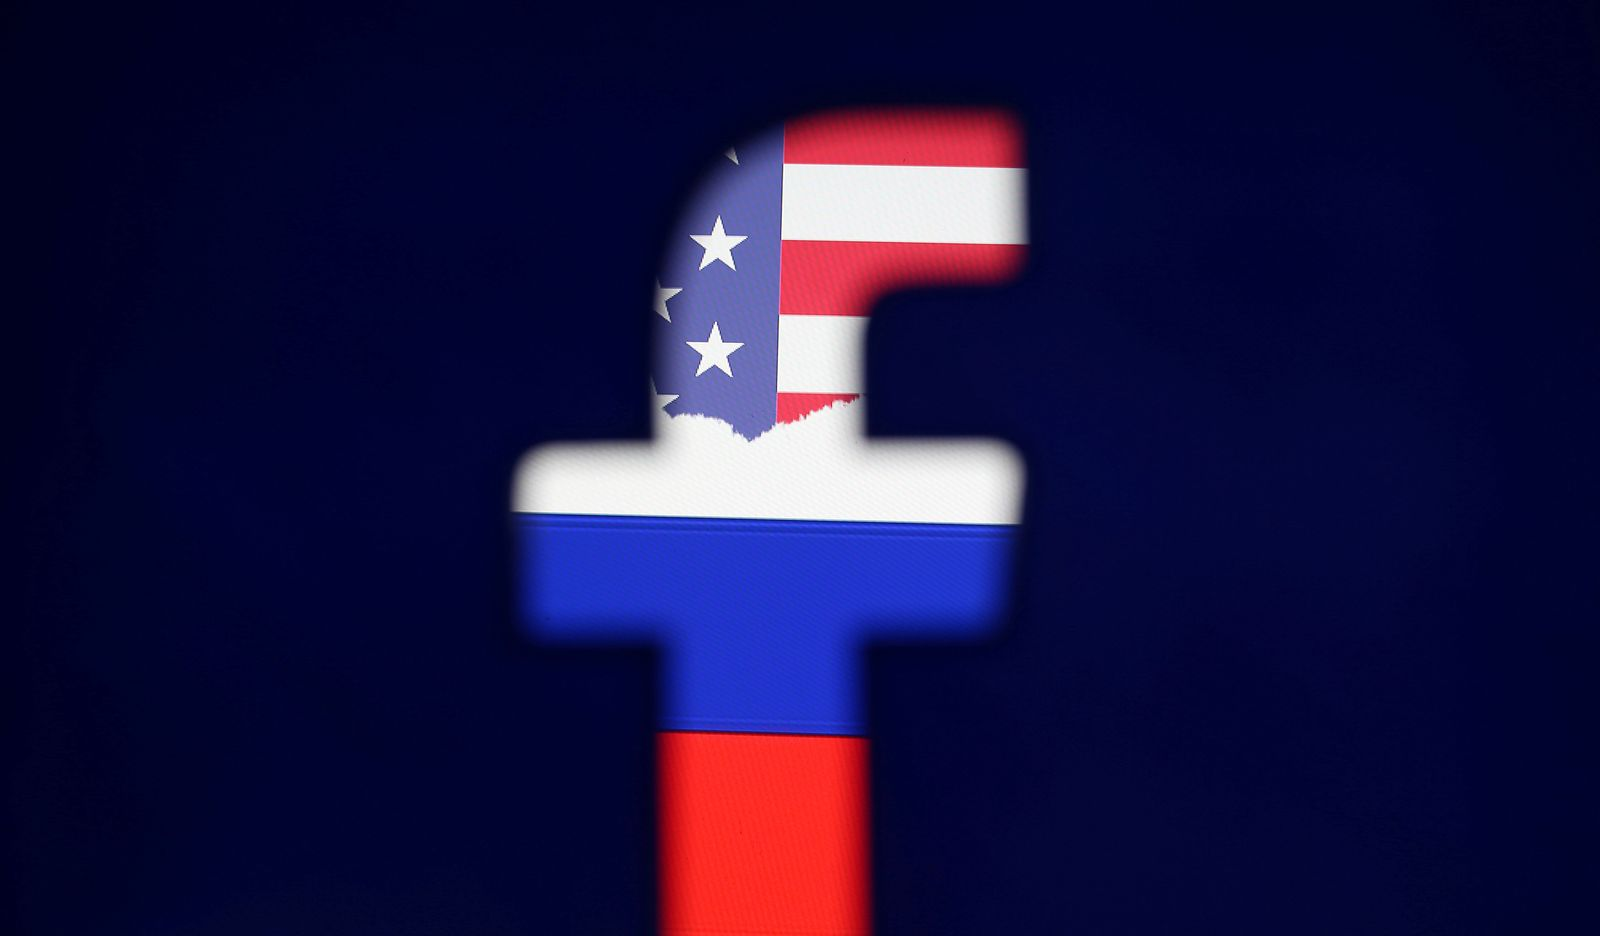 FACEBOOK-ELECTION/USA